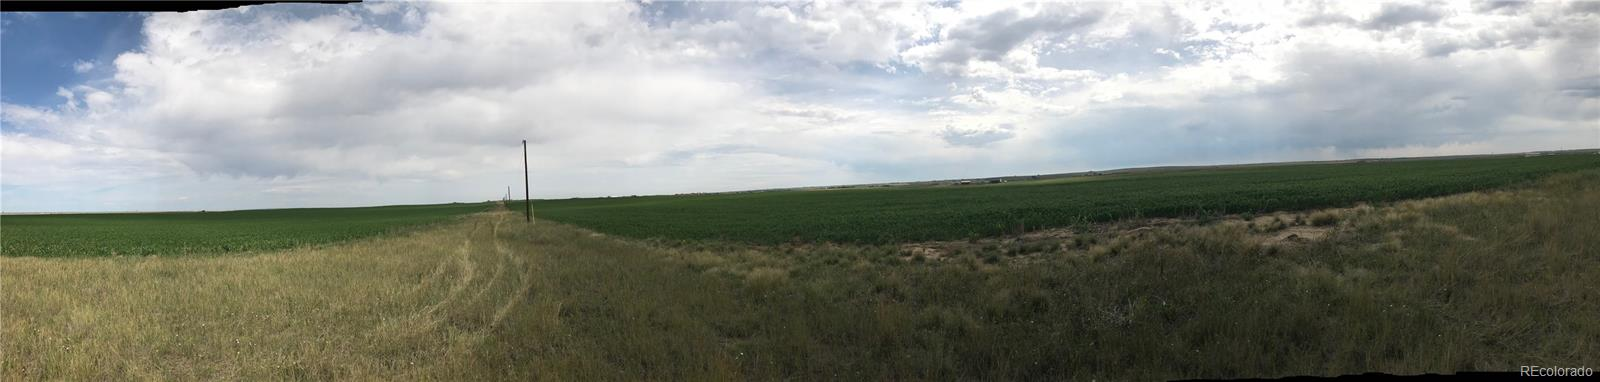 Wide angled view from south side of property to the north